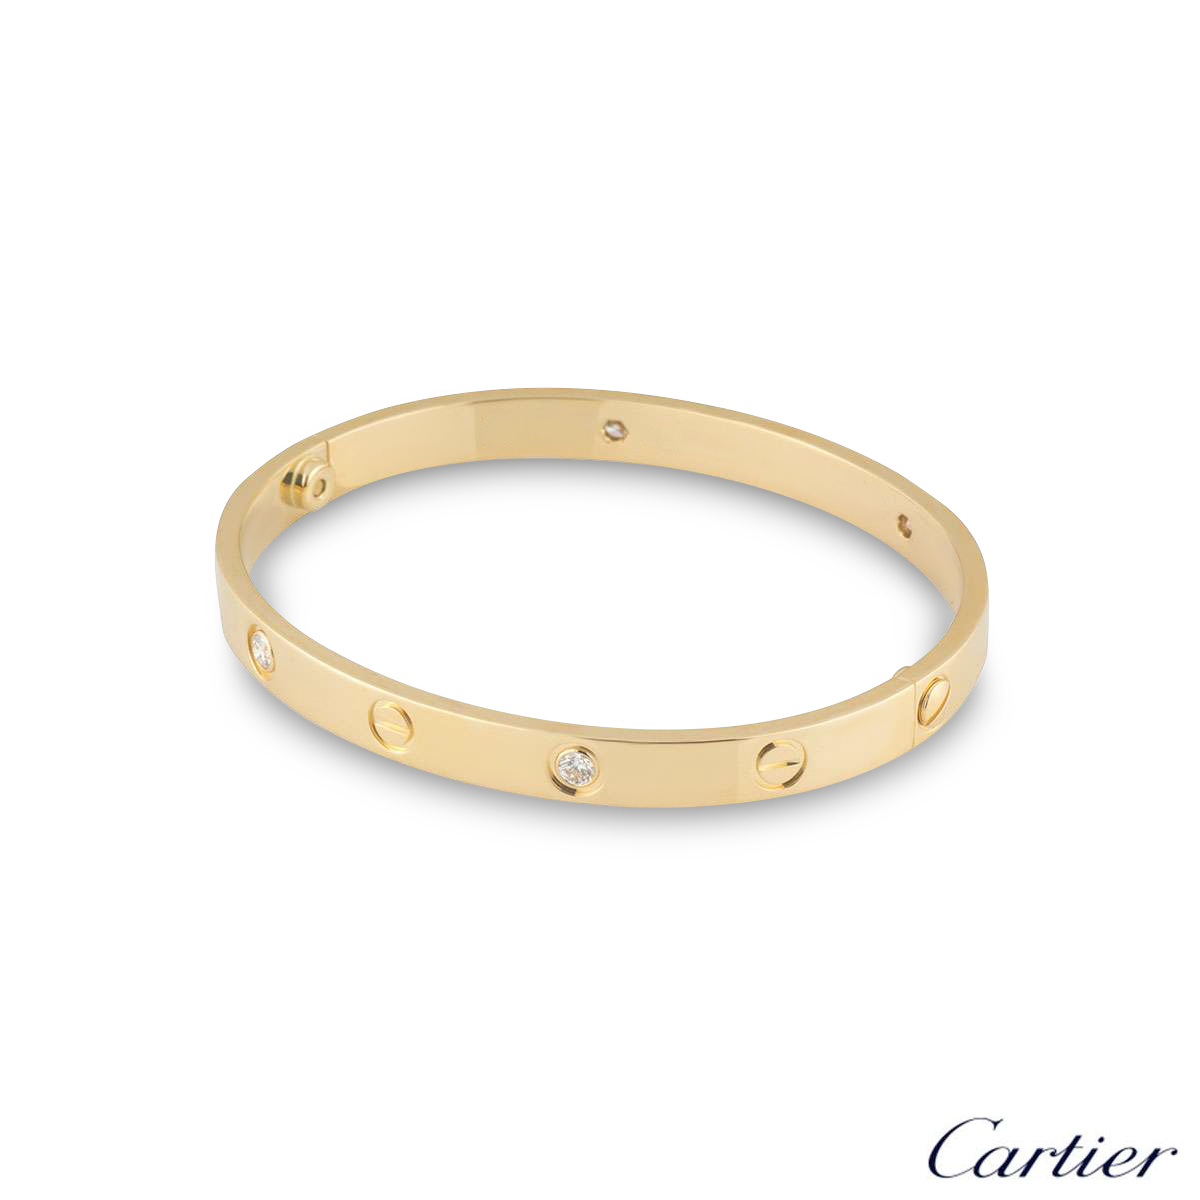 Cartier Yellow Gold Half Diamond Love Bracelet Size 16 B6035916